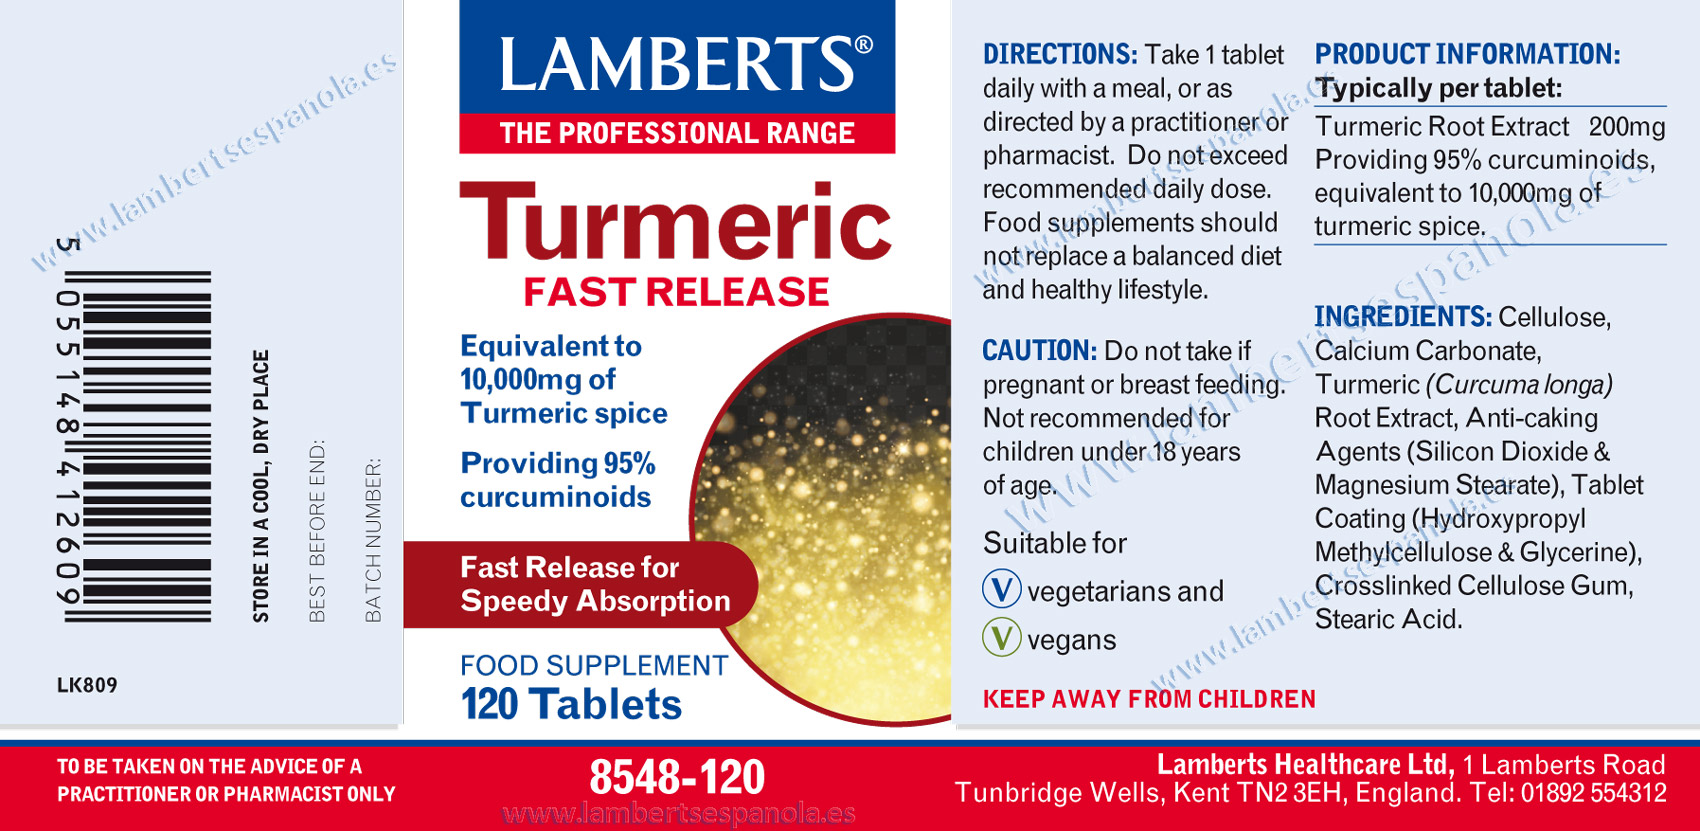 Label of Turmeric fast realease by Lamberts with properties and indications. 120 tabs presentation.